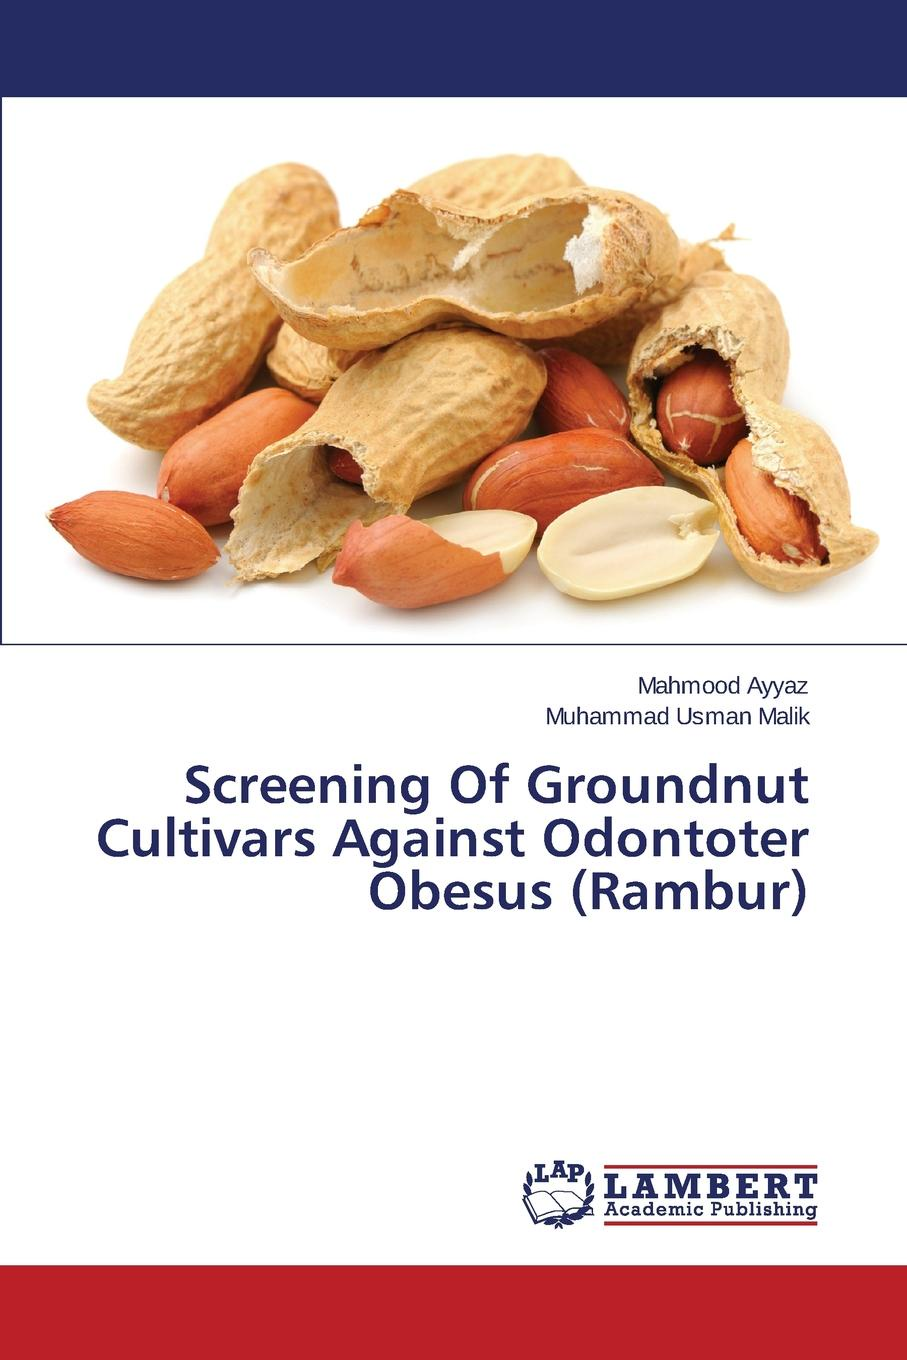 Ayyaz Mahmood, Malik Muhammad Usman Screening Of Groundnut Cultivars Against Odontoter Obesus (Rambur) штатная магнитола incar ahr 2461